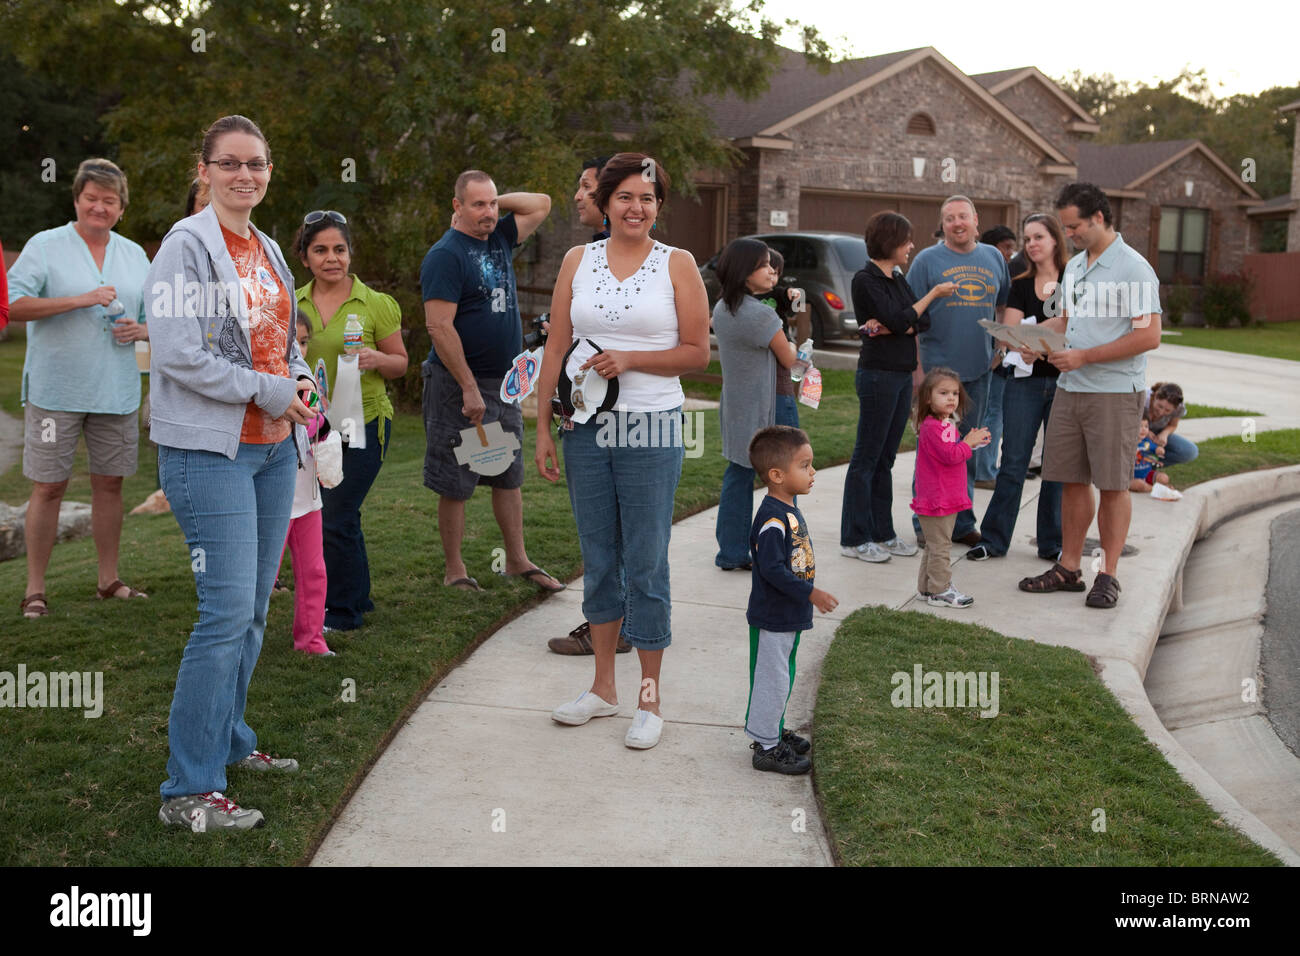 Austin neighbors gather during National Night Out, a national anti-crime effort aimed at keeping neighborhoods vibrant - Stock Image